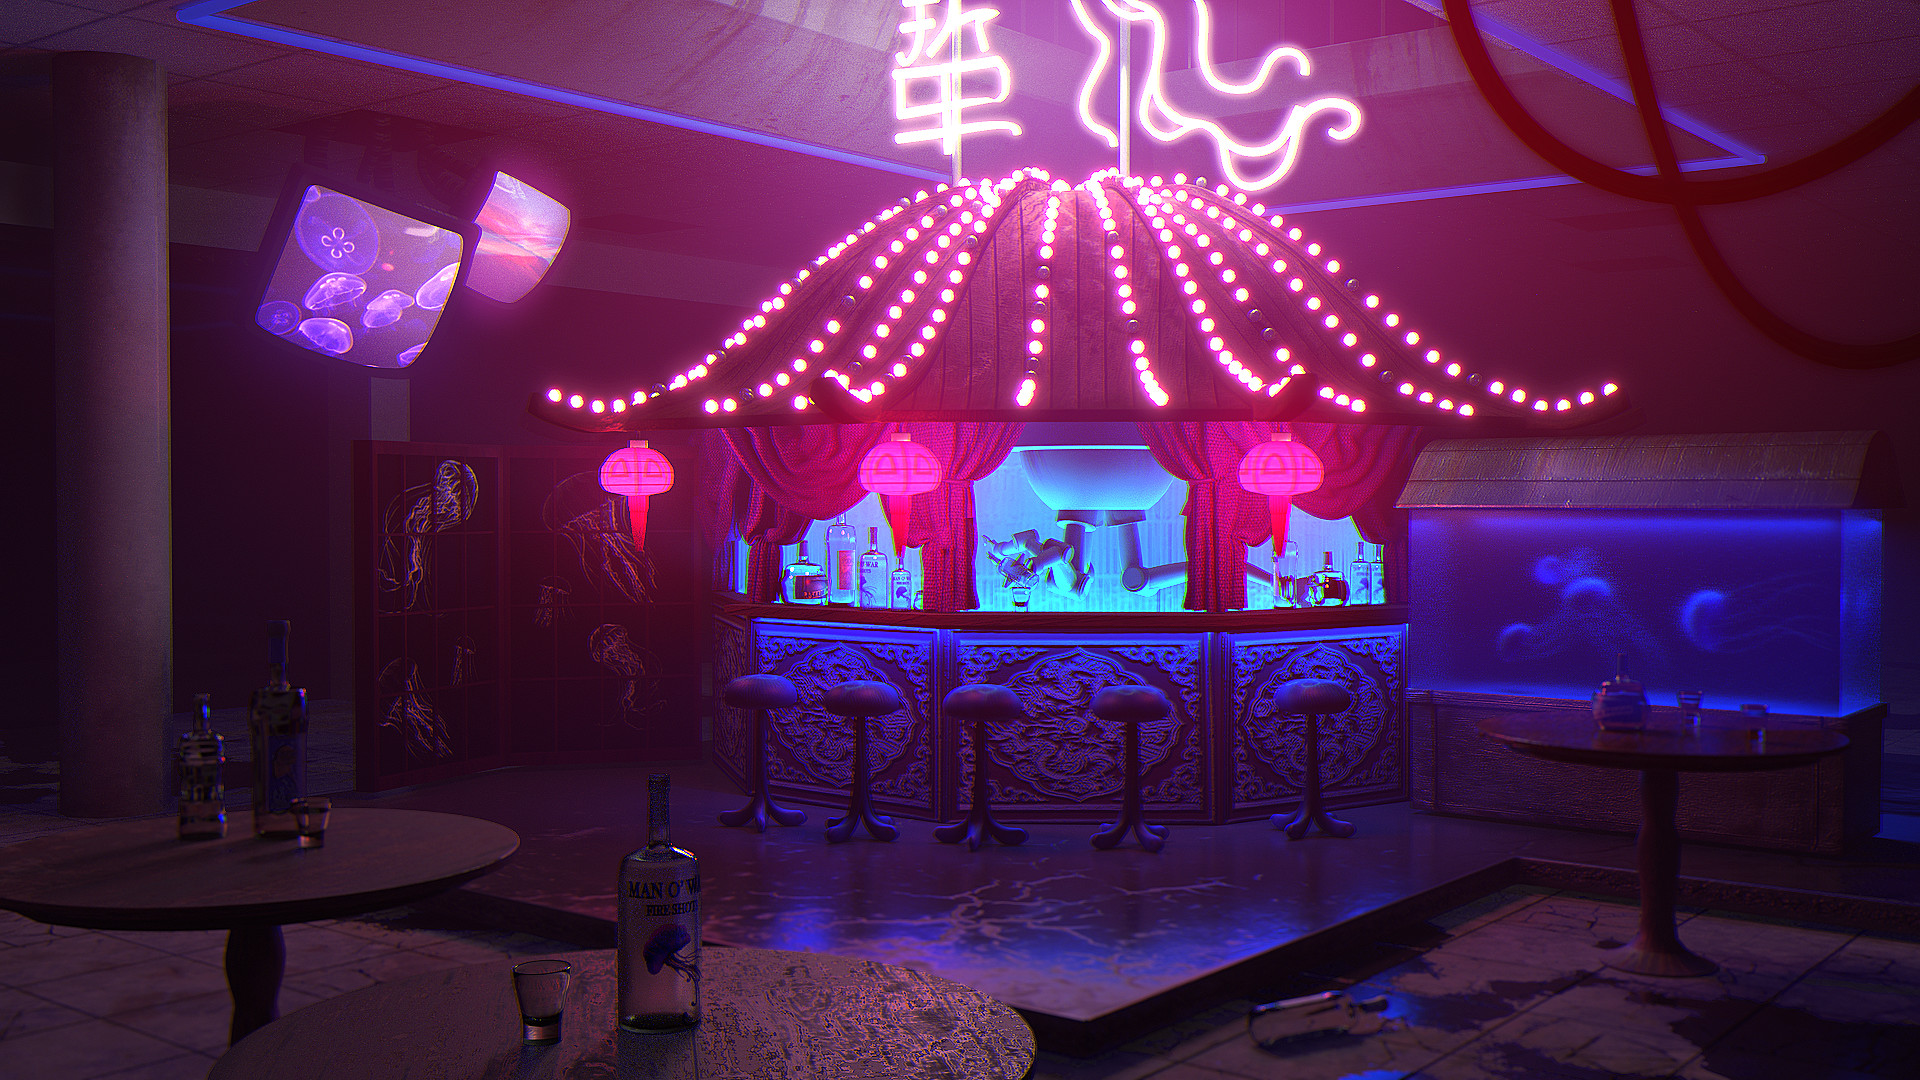 Fly Table Bar Artstation Neon Jellyfish Bar L M Fly